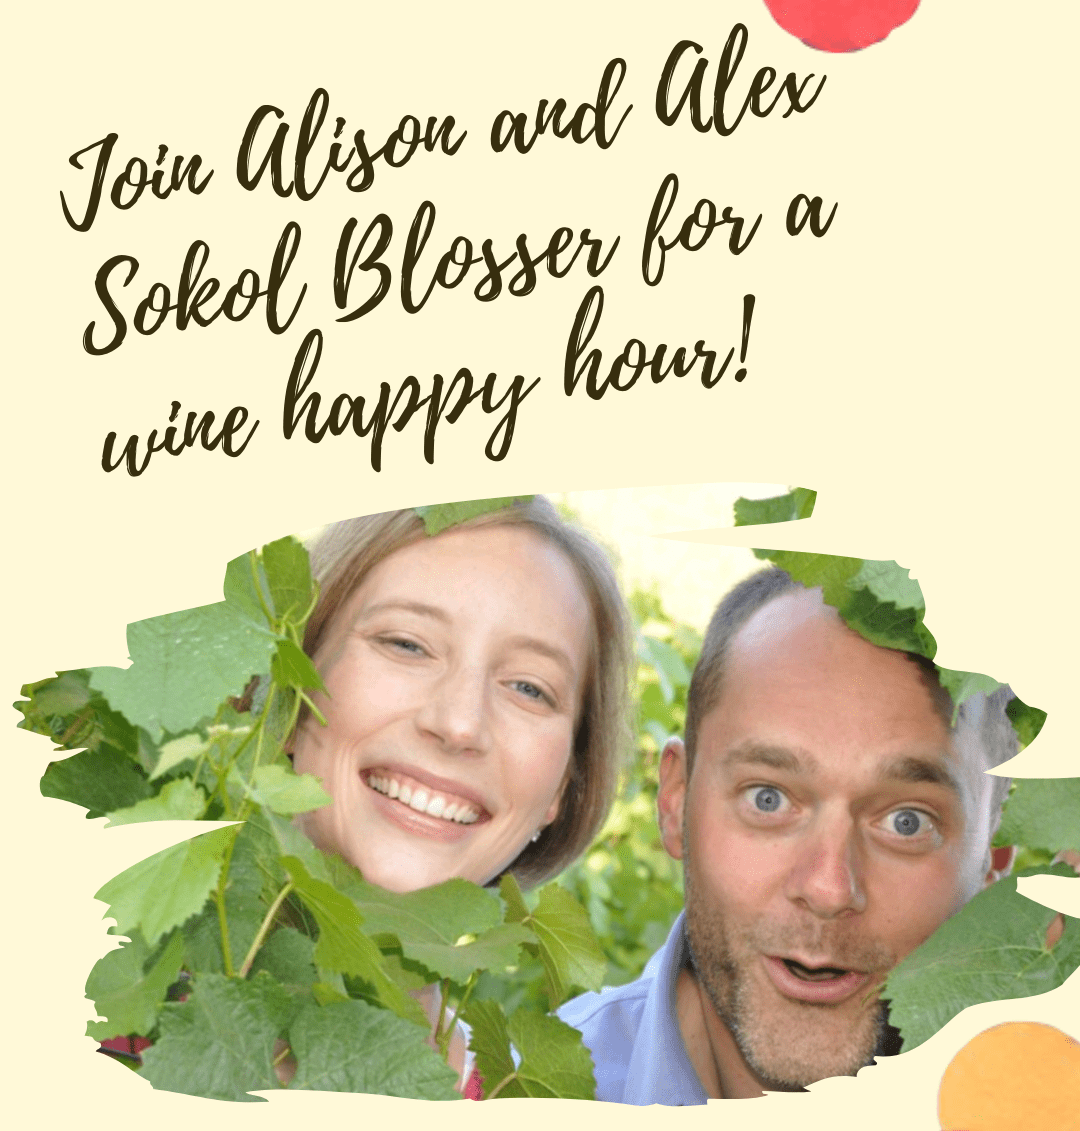 20200324 153538 0000 2 3 q7SQRn.tmp  - Virtual Happy Hour with Alex and Alison Sokol Blosser